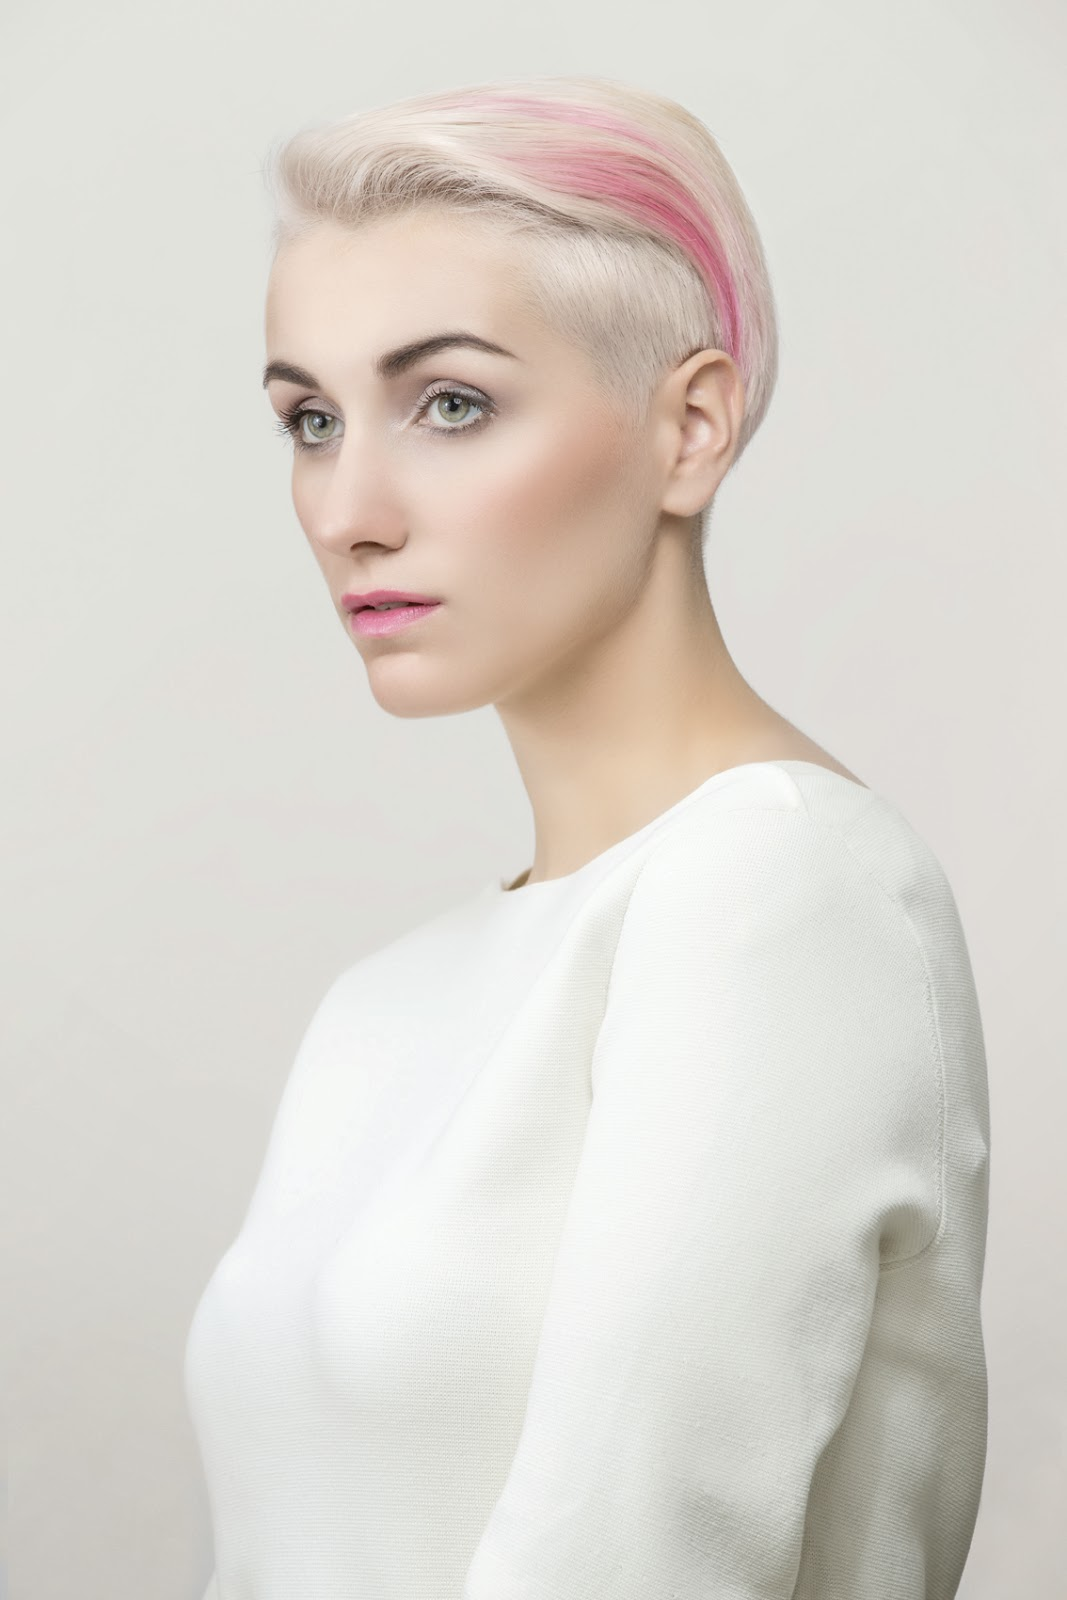 Capelli rosa by Vania Laporte for L'Oréal Professionel Paris